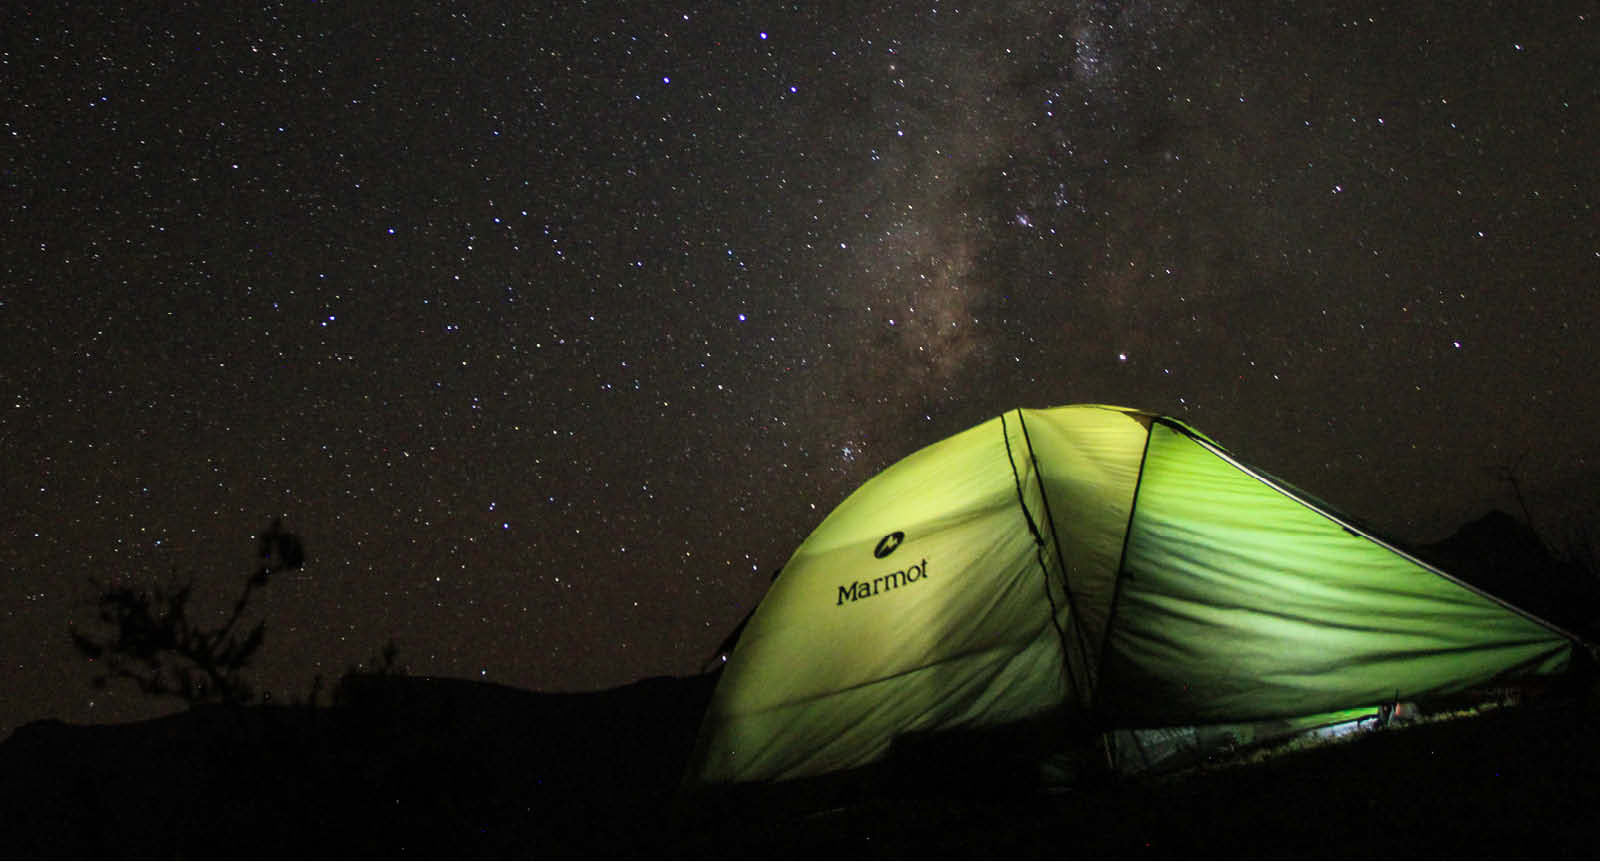 Starry night and tent in Ethiopia (c) Richard Wain-Hobson